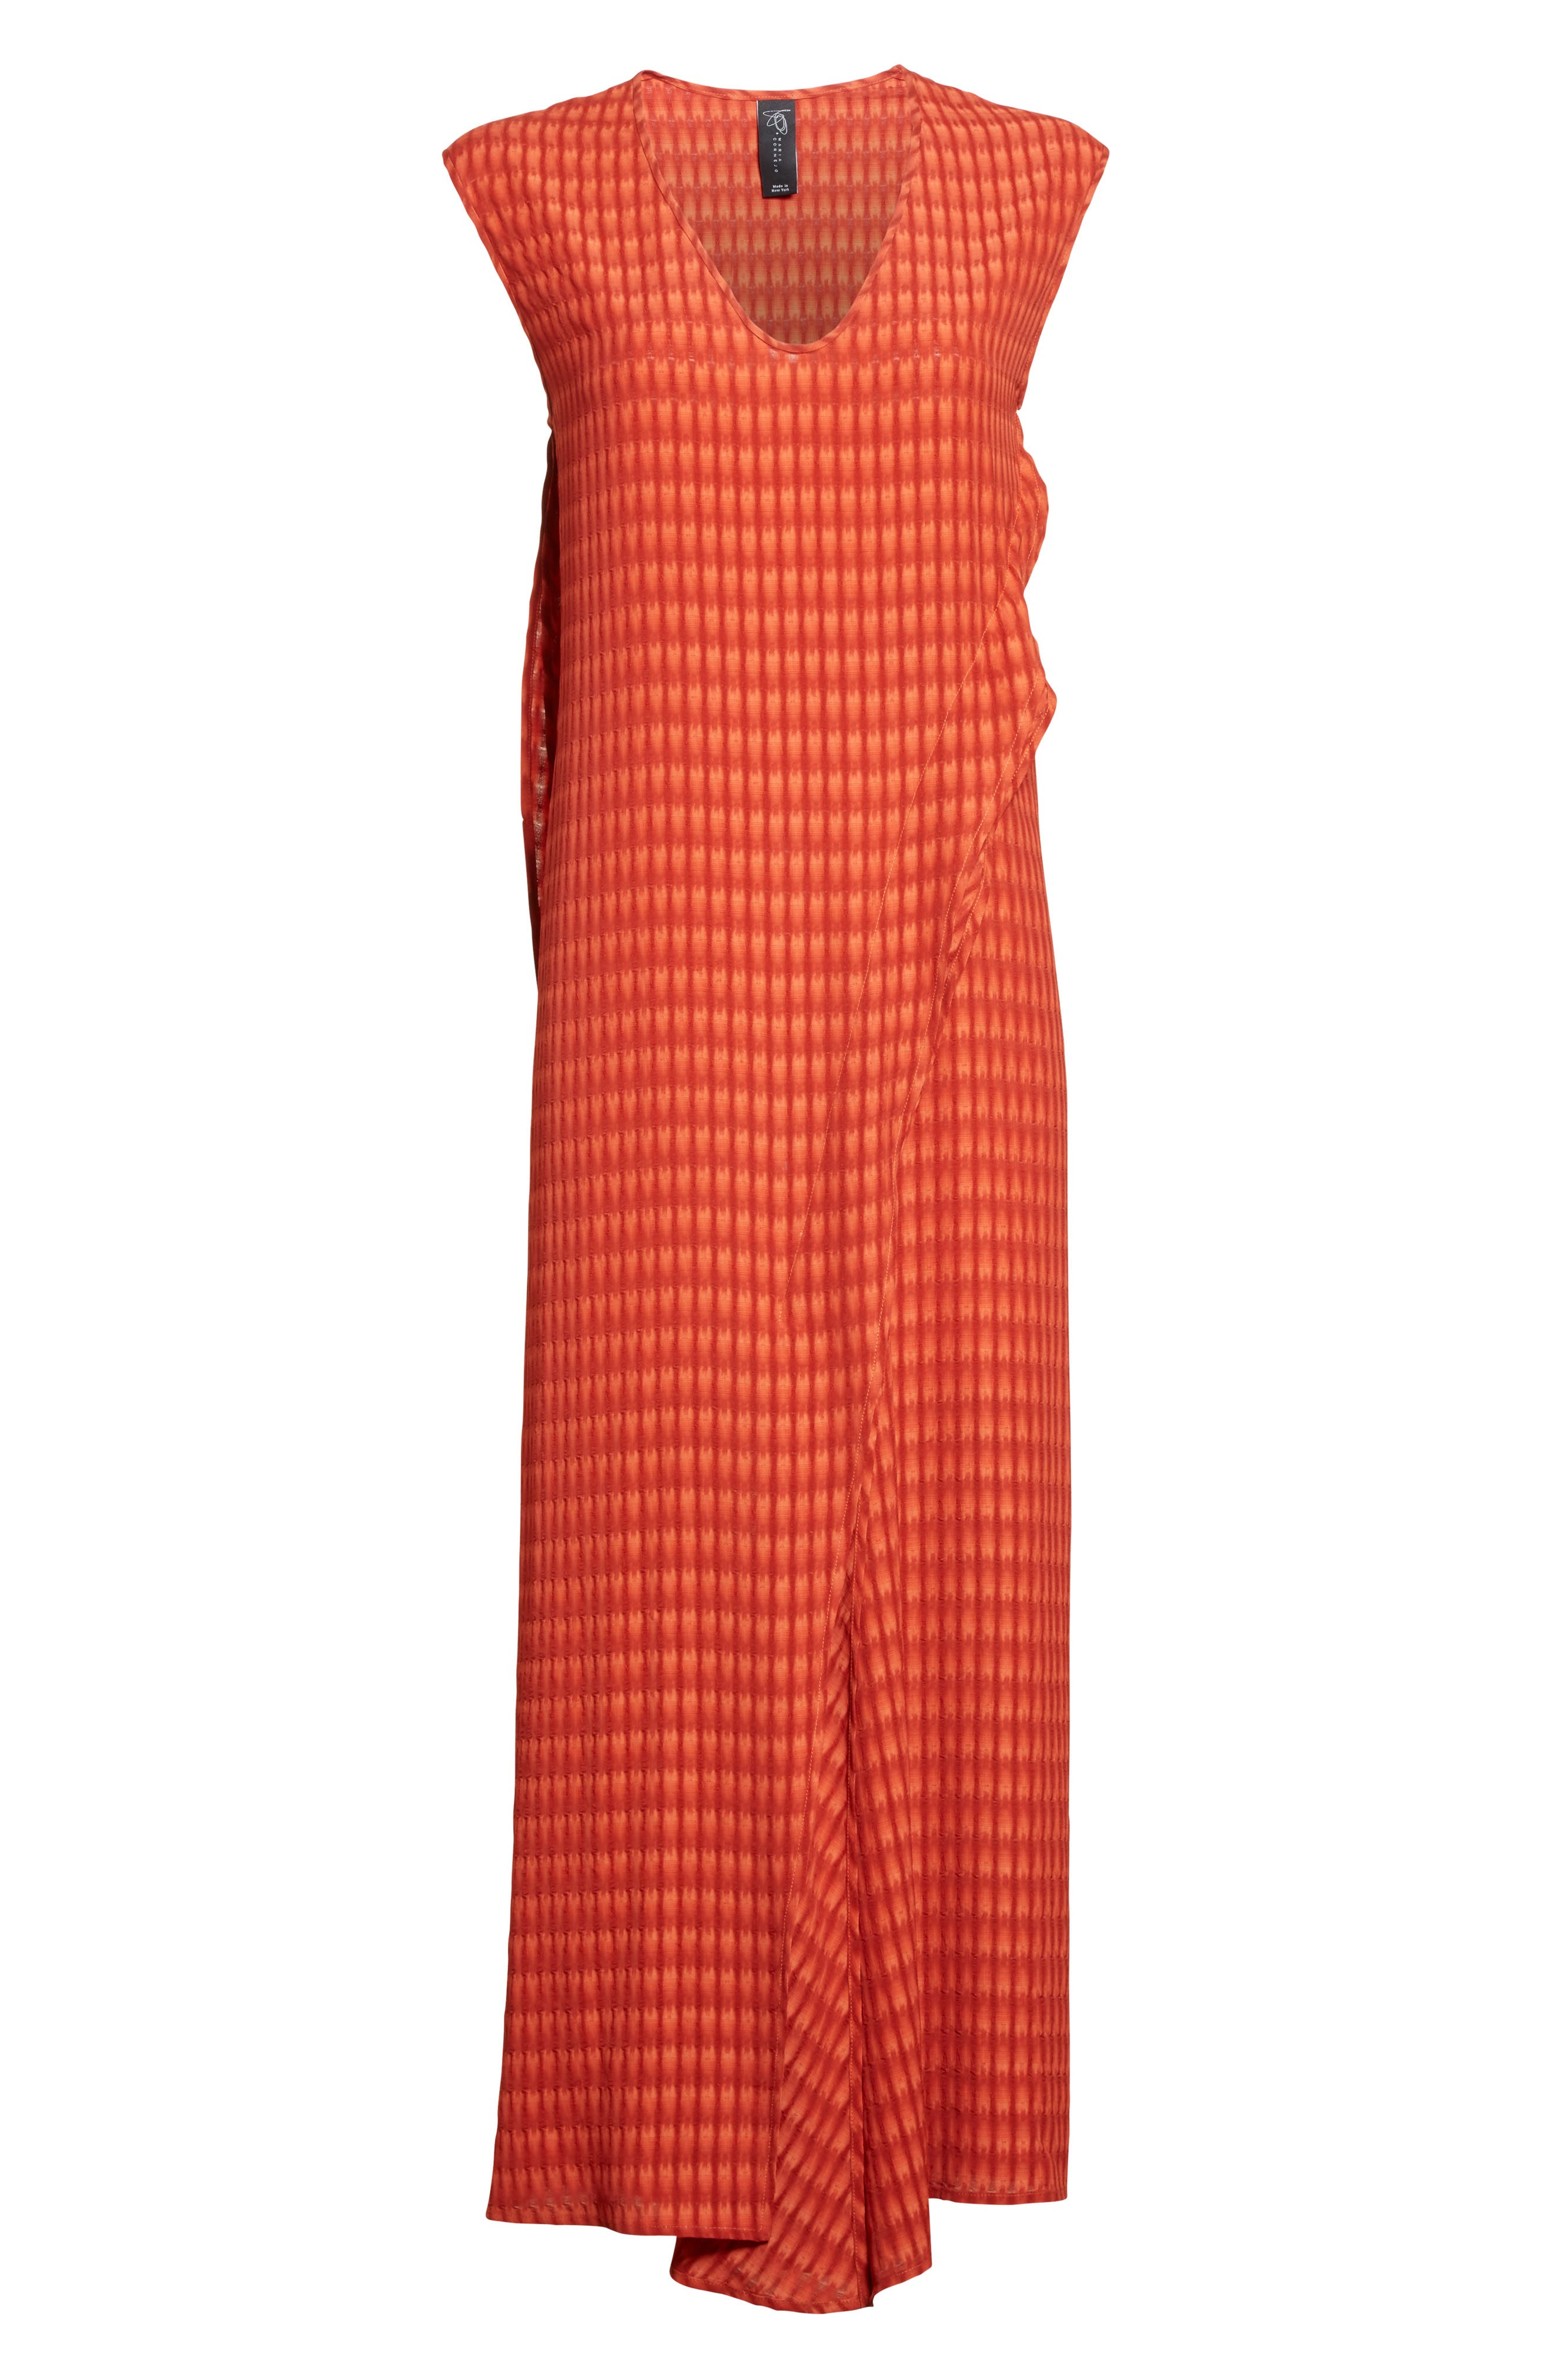 Twisted Tank Batik Plaid Dress,                             Alternate thumbnail 4, color,                             Saffron Red